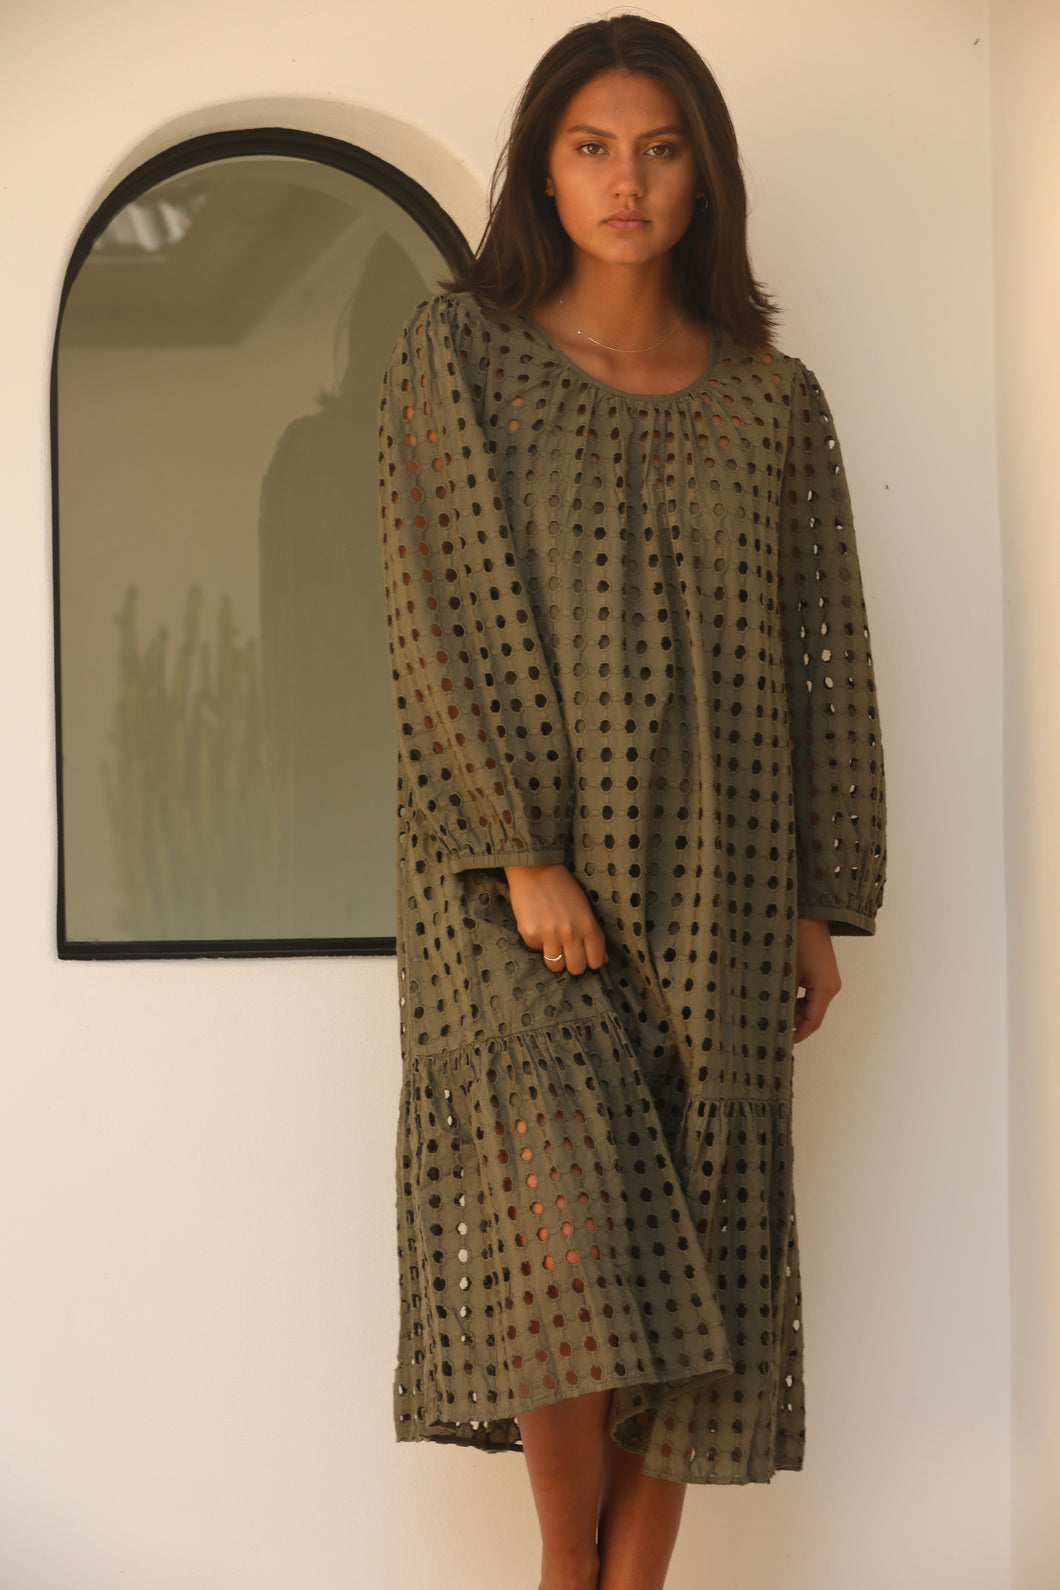 V De Vinster - Shiffli khaki dress